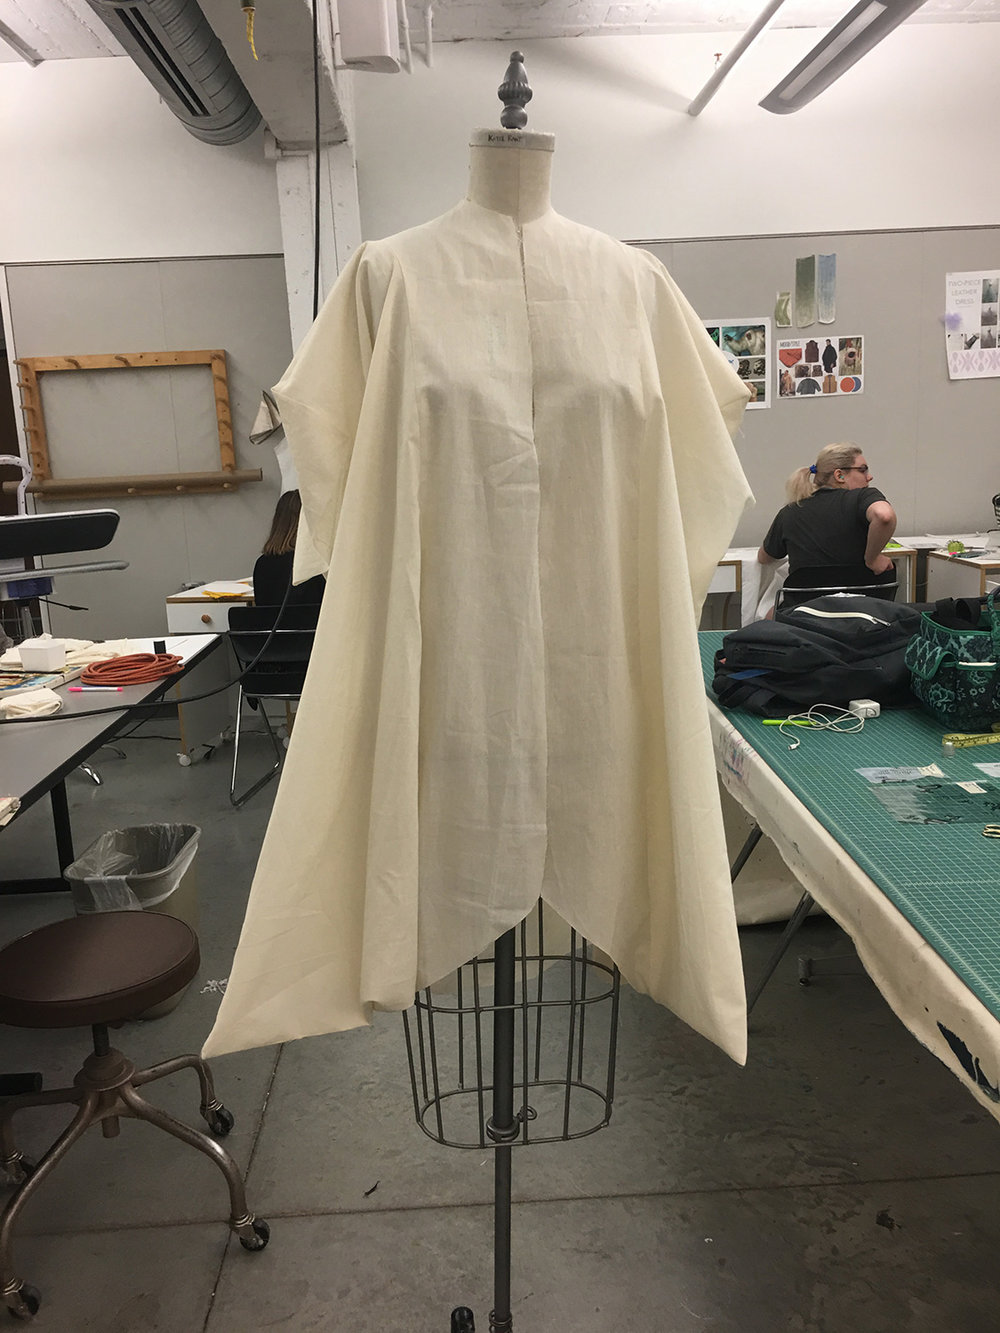 After deconstructing the original drape, I continued to alter the pattern on paper. Mock up above #3. Due to material, the pattern could only consist of straight lines.